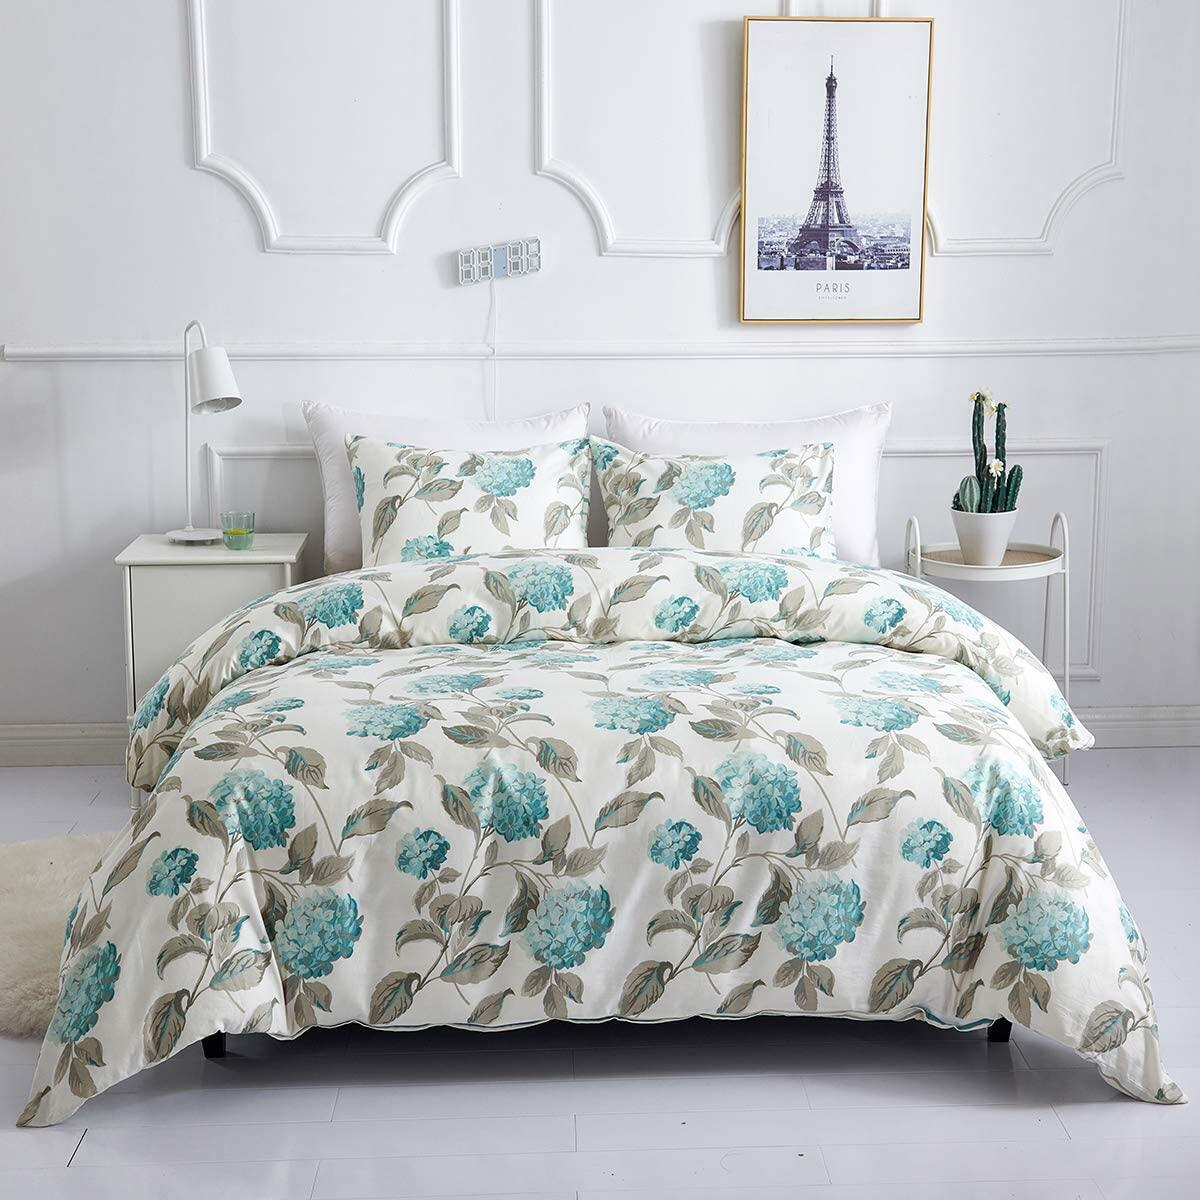 WARMDERN Duvet Cover Set Queen Floral 100% Cotton 3 Pieces Green Flower Plant Soft Breathable Lightweight Bedding Set with Zipper Closure Corner Ties, 1 Comforter Cover and 2 Pillowcase (Queen,Green)